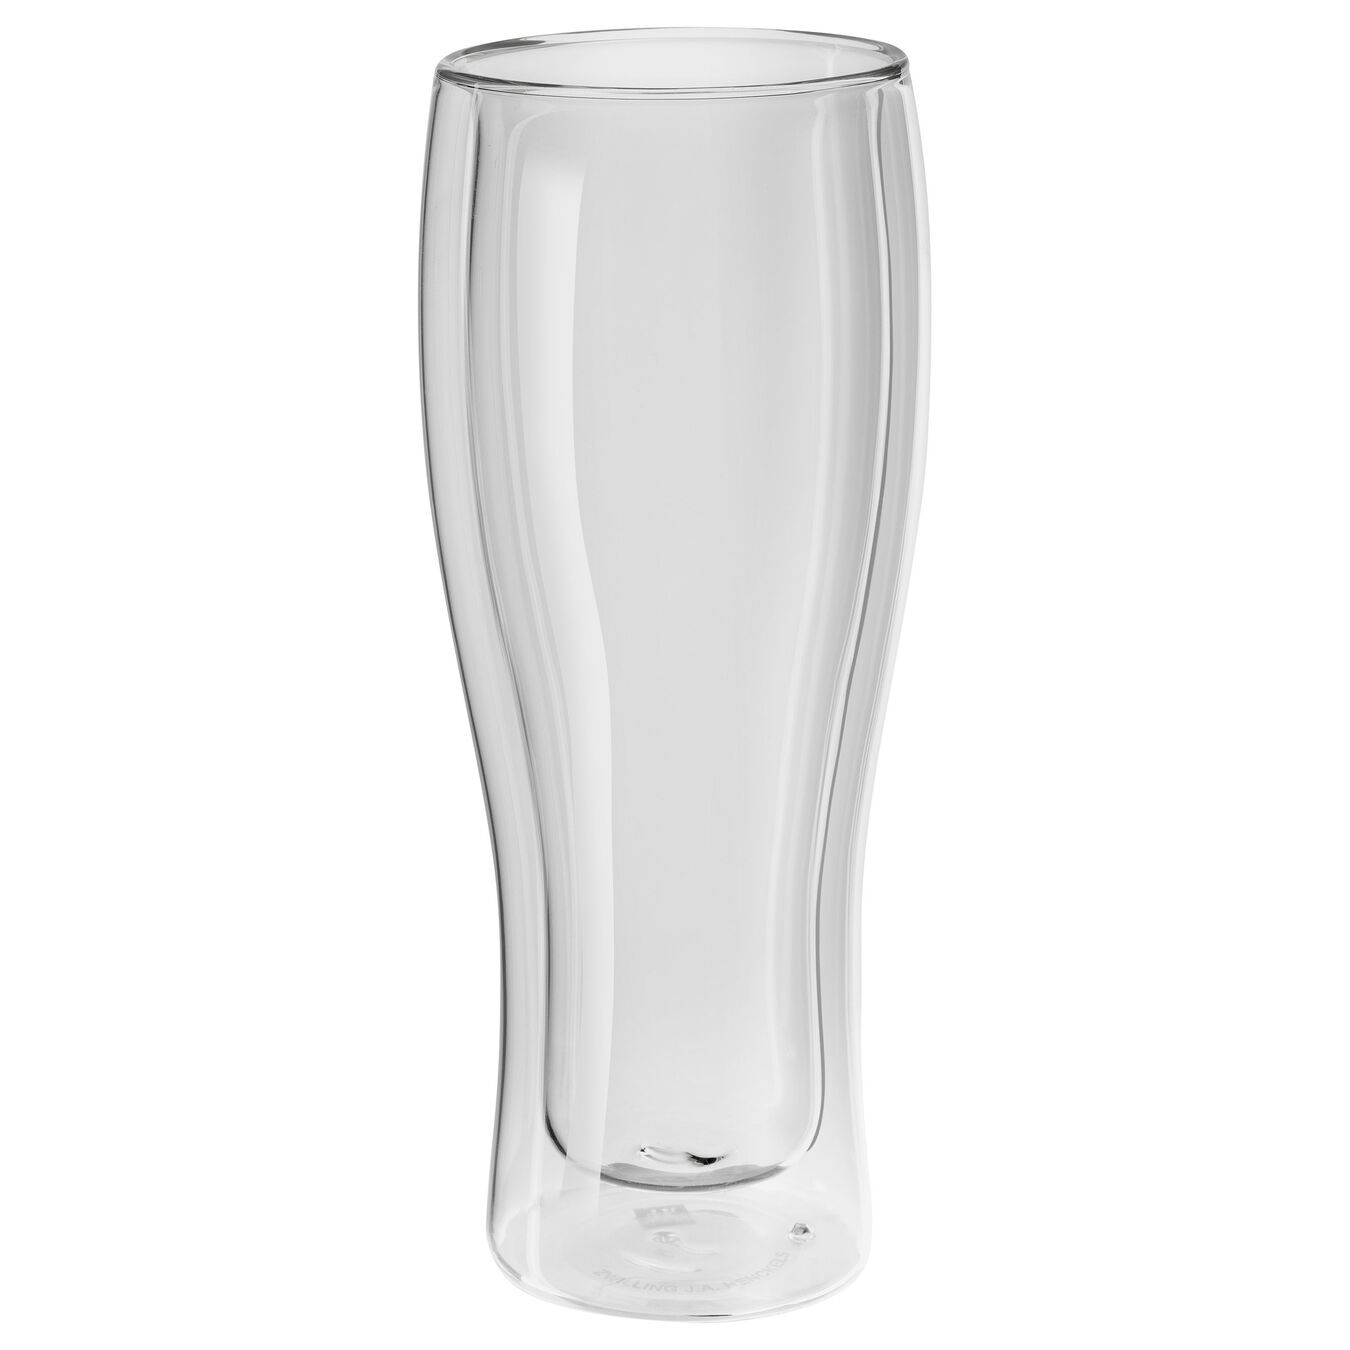 Bier Glas, 2-er Set 400 ml,,large 1